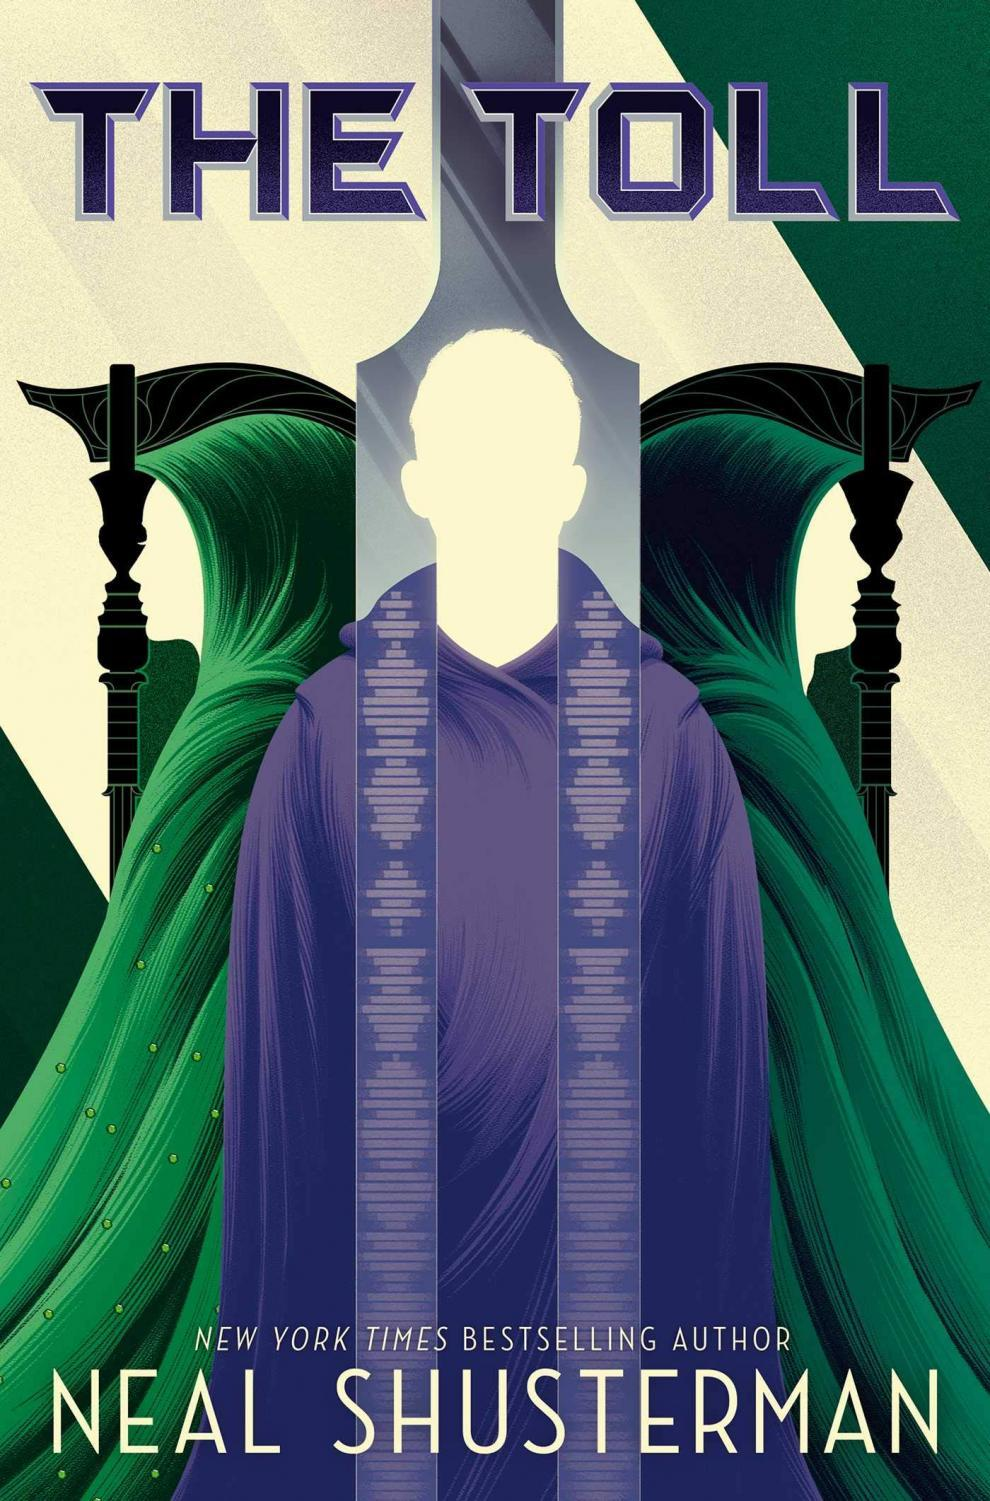 The cover for the third book in The Arc of the Scythe series, The Toll by Neal Shusterman.